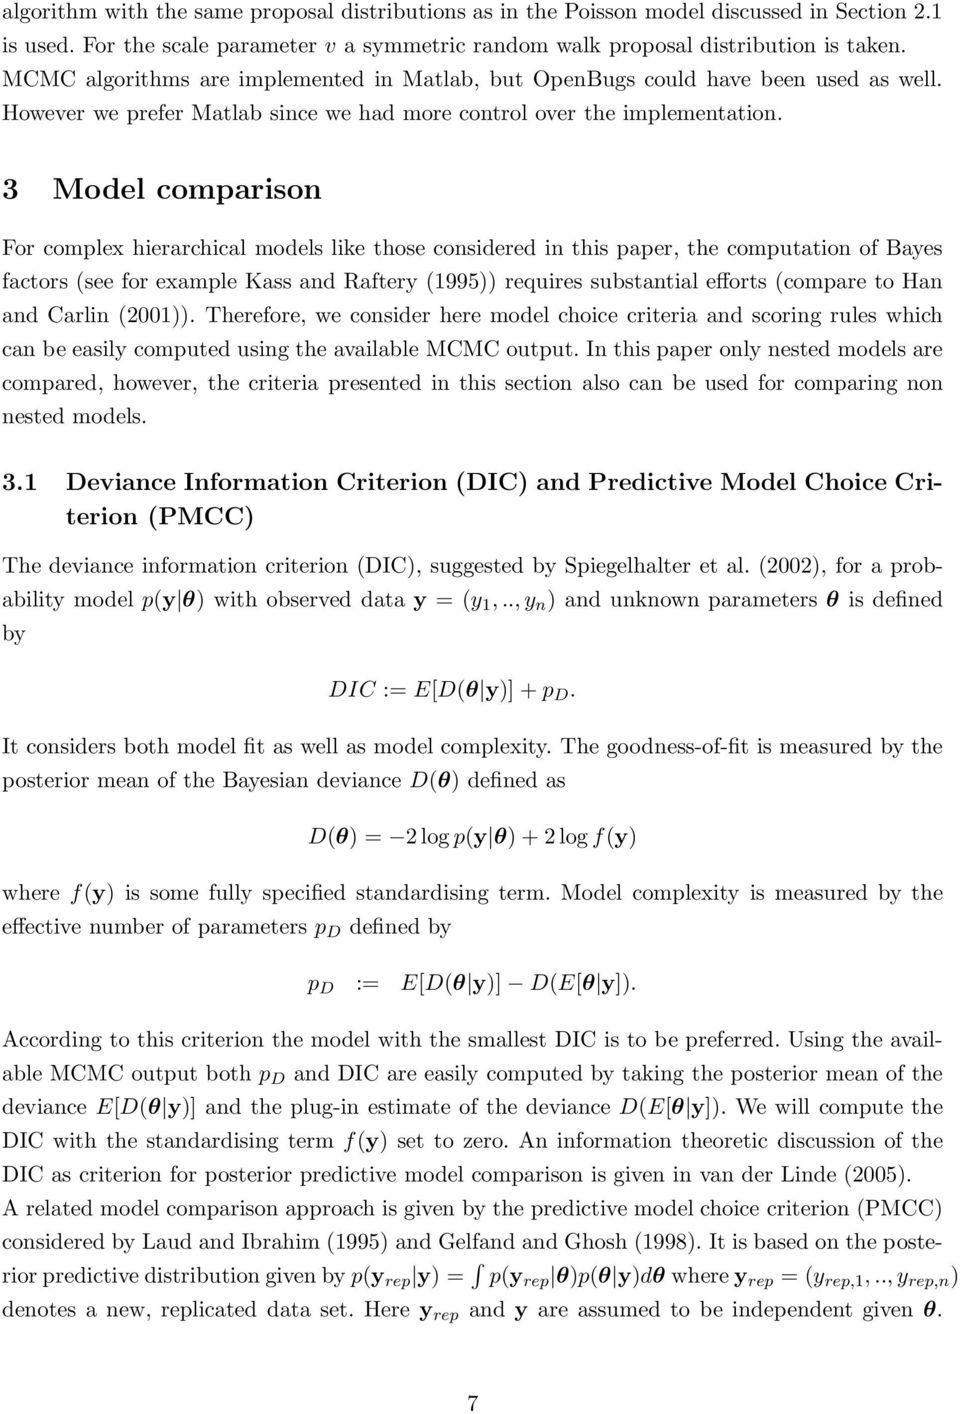 3 Model comparison For complex hierarchical models like those considered in this paper, the computation of Bayes factors (see for example Kass and Raftery (1995)) requires substantial efforts